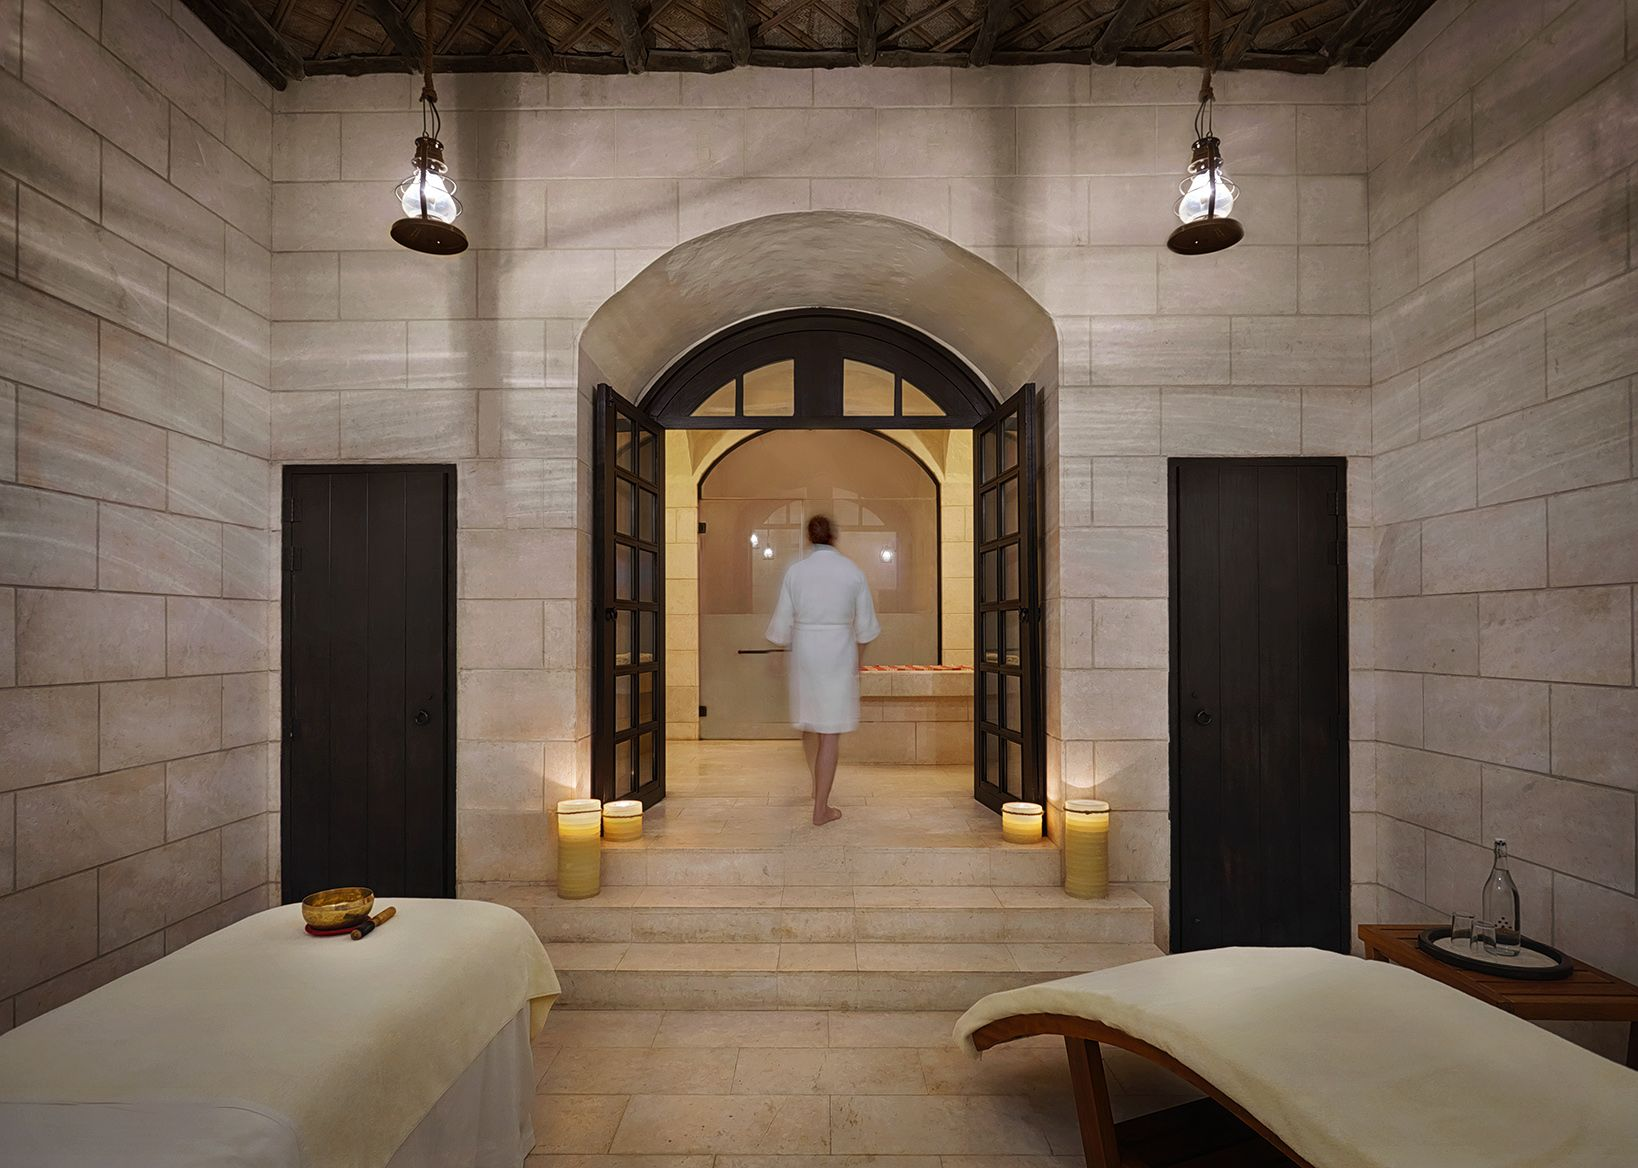 Visit A Hammam And Experience Rejuvenation